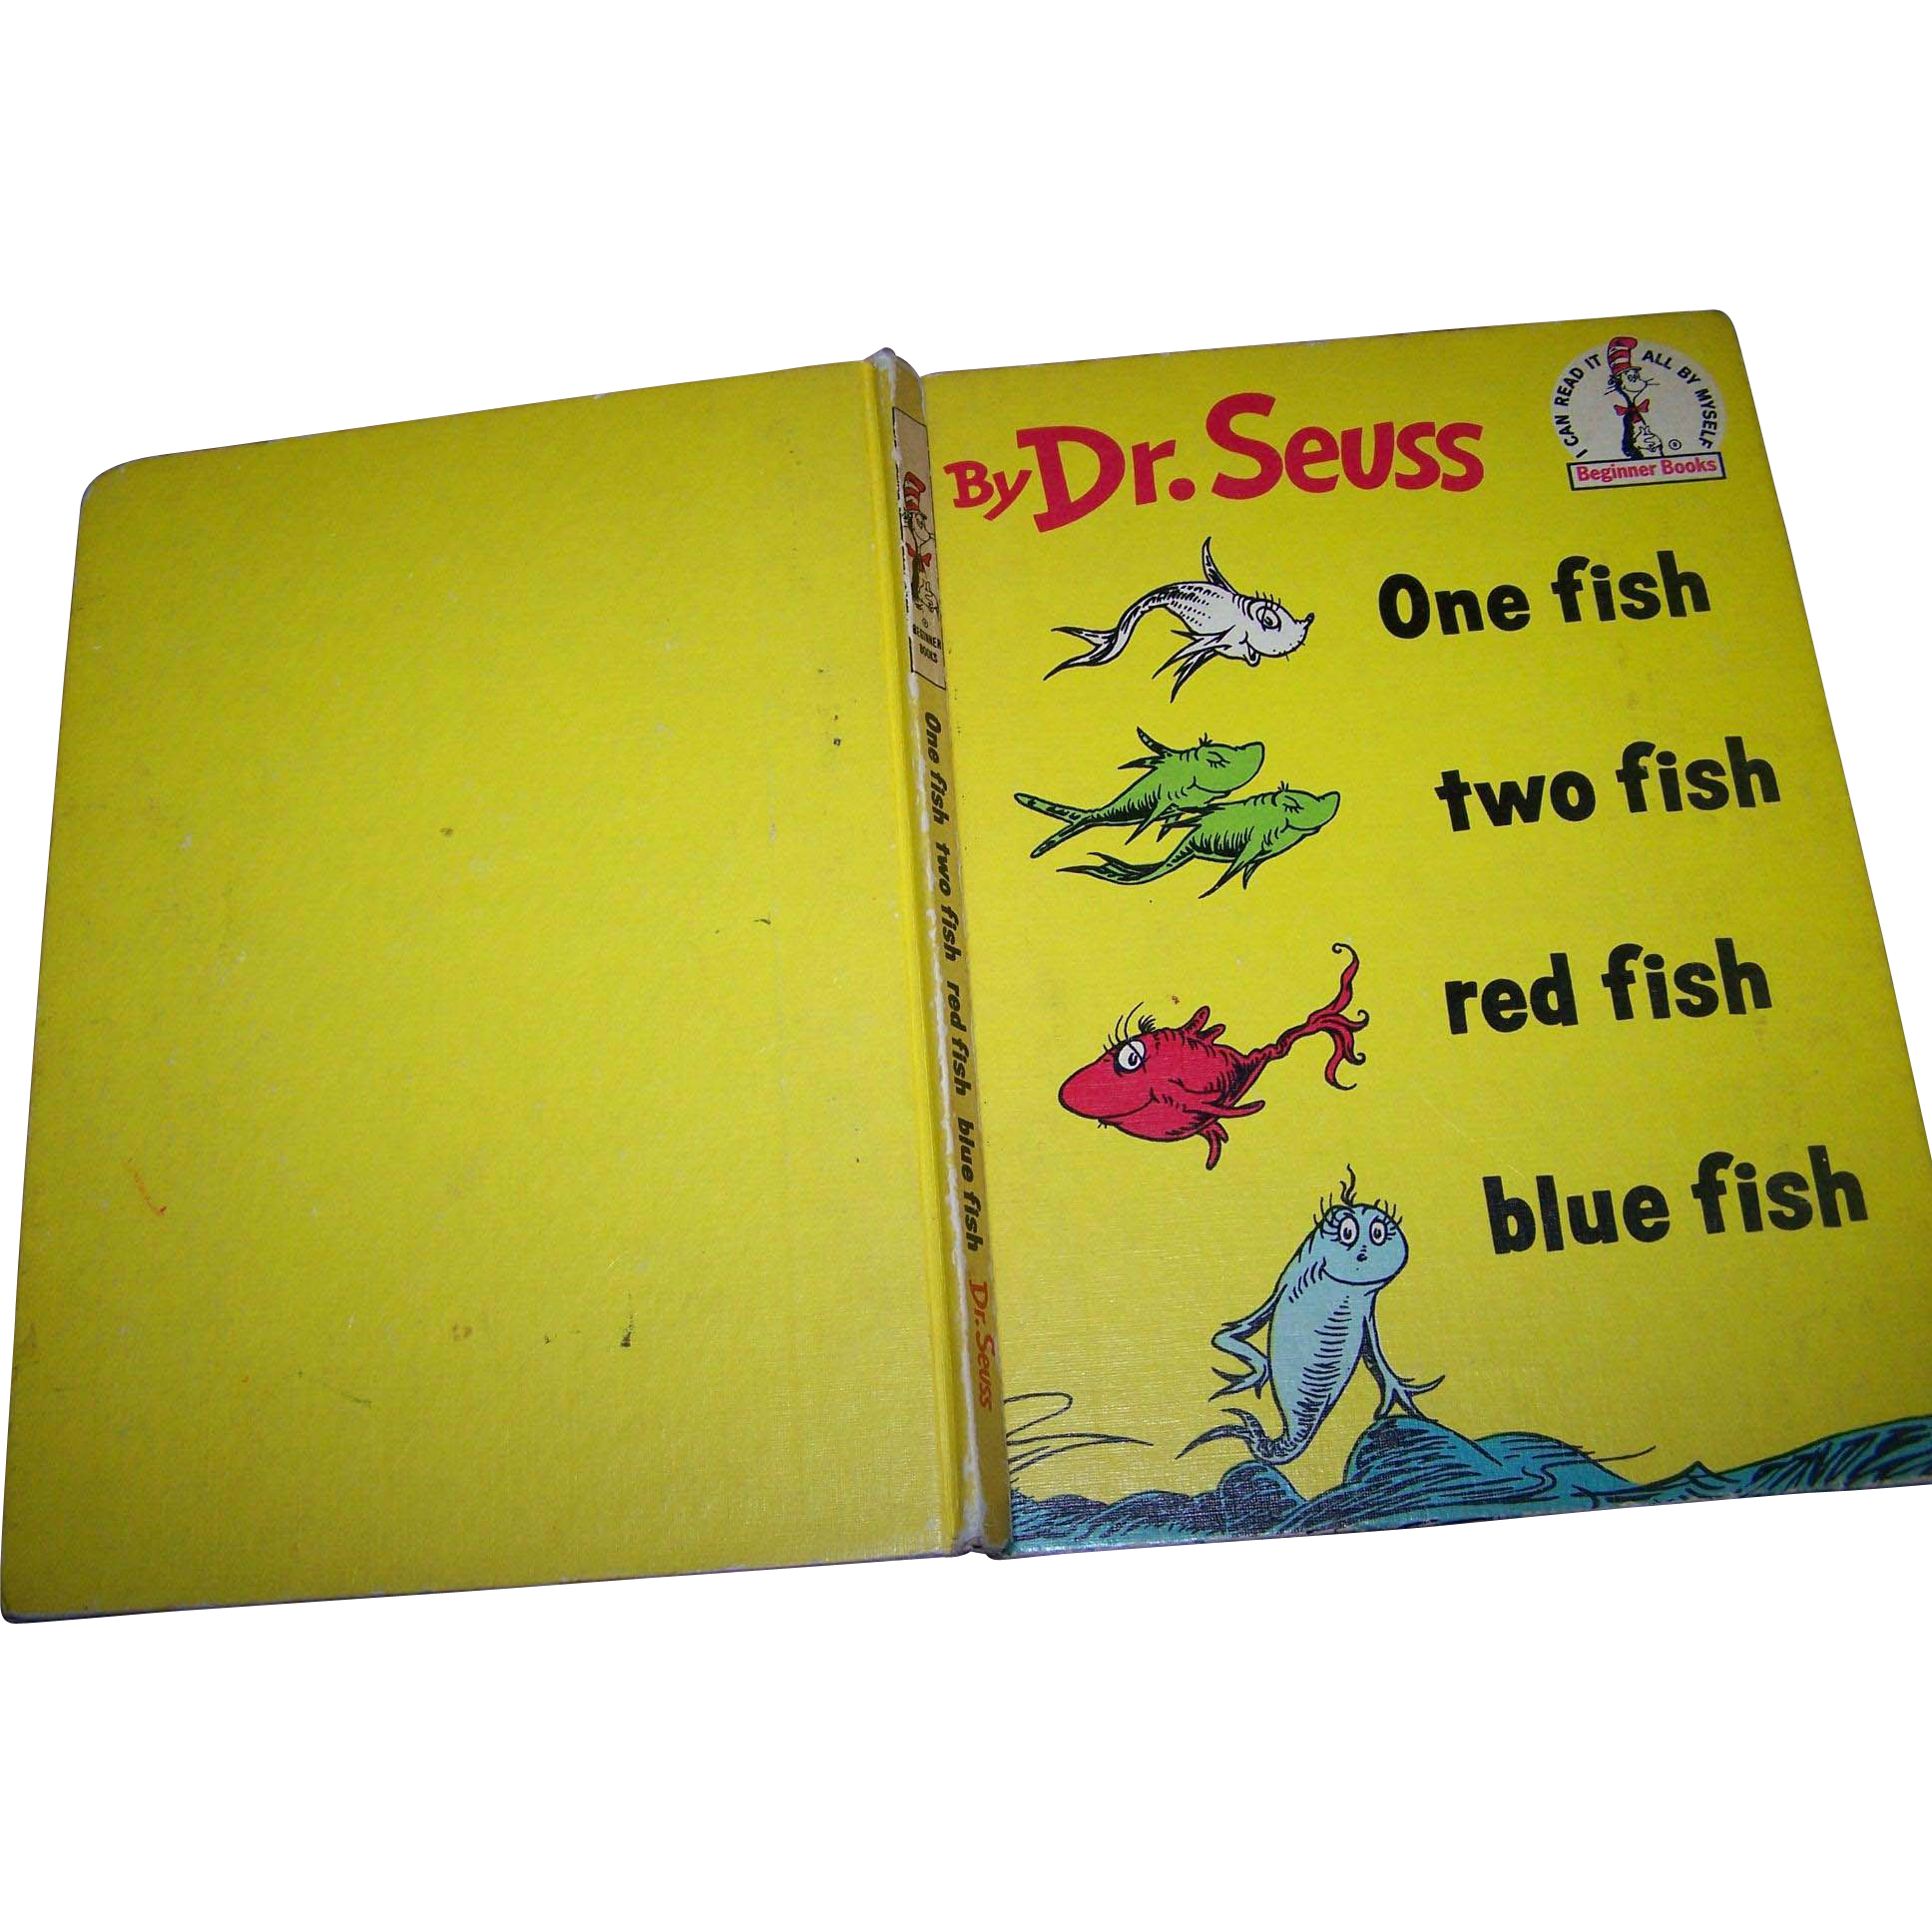 Hard Cover Book by Dr. Seuss One Fish Two Fish Red Fish Blue Fish